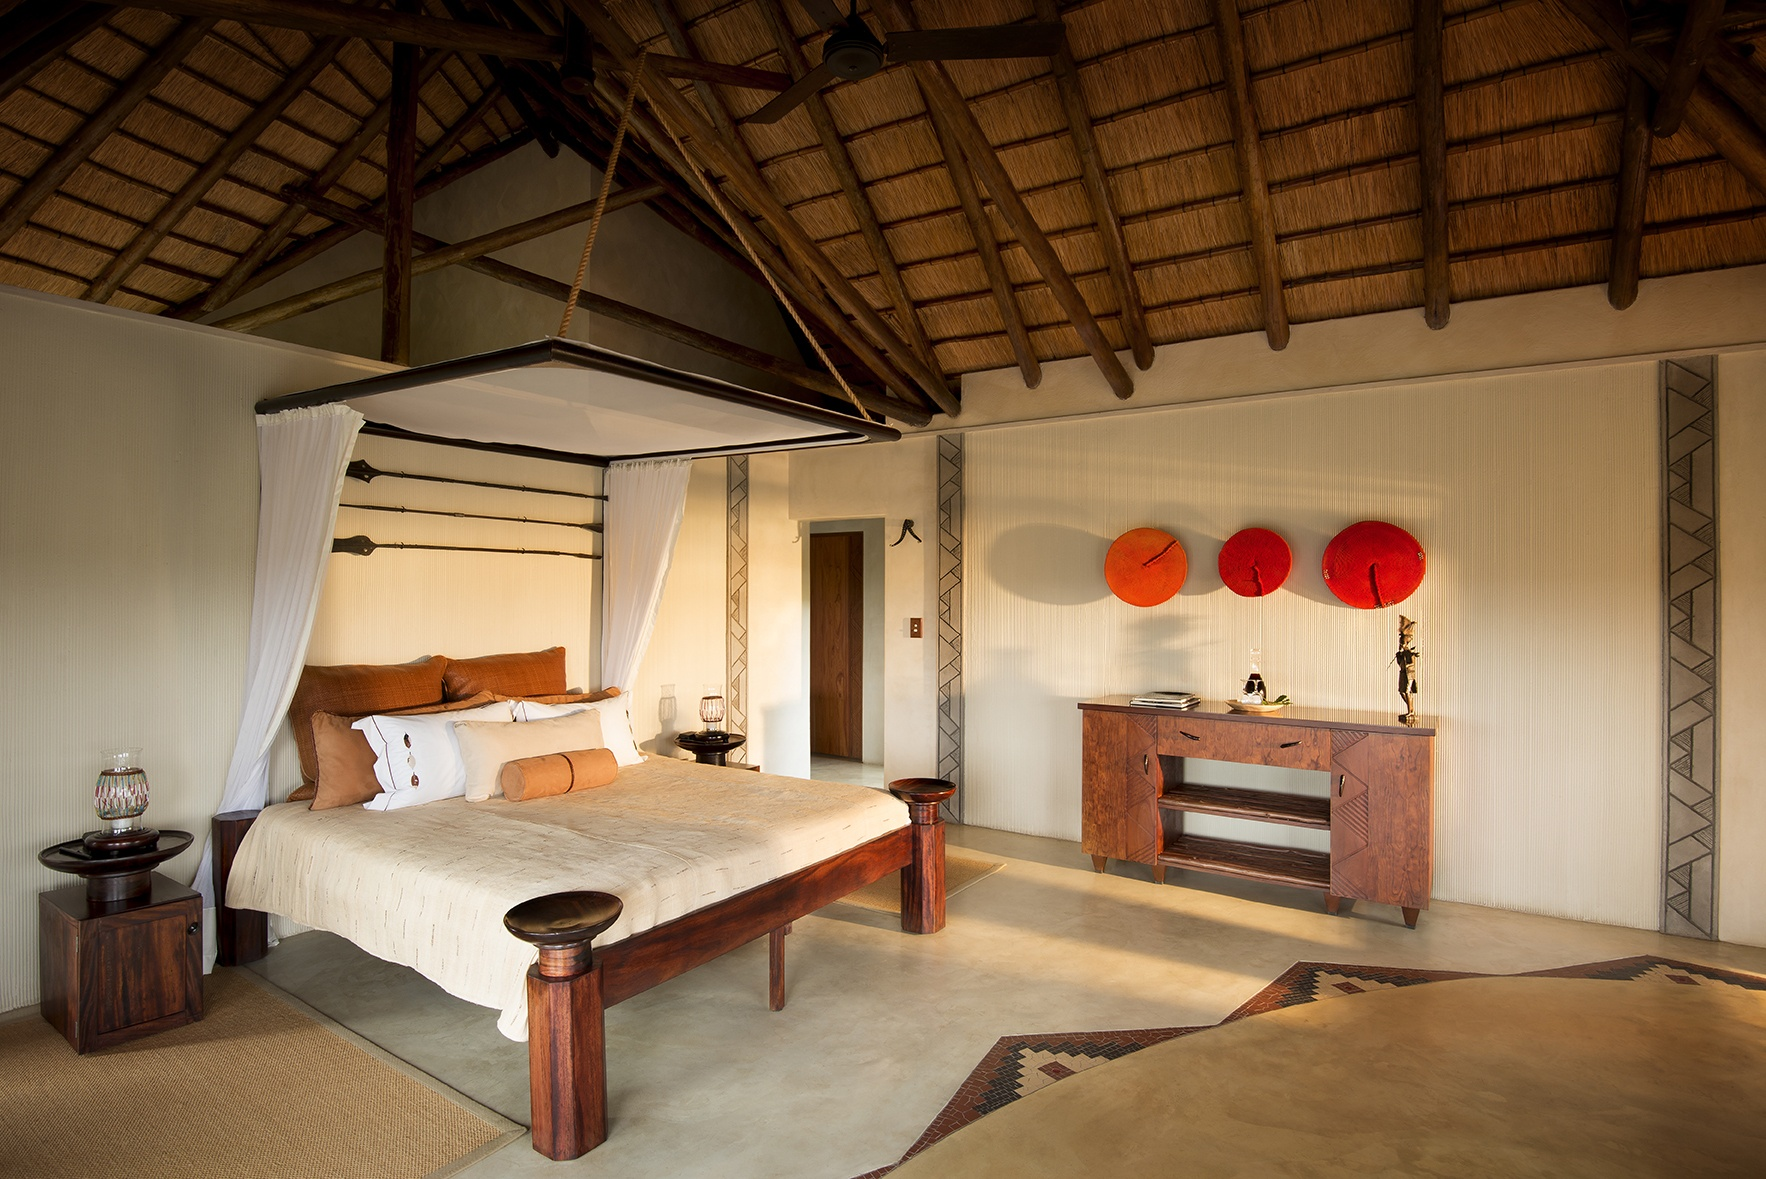 bed-thatch-red-rustic